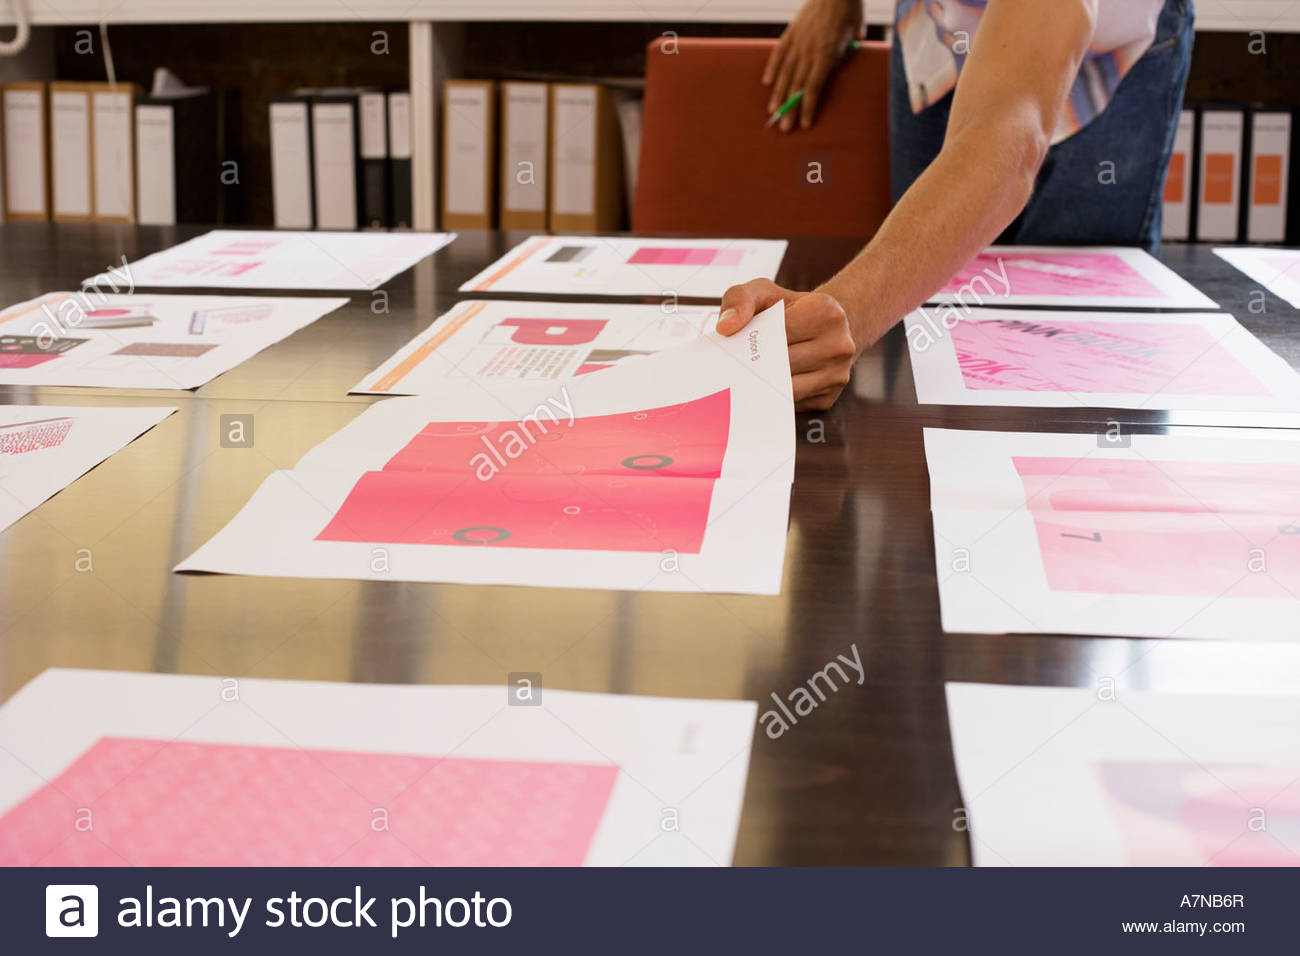 Man looking at various designs arranged on large table in office choosing one design surface level - Stock Image